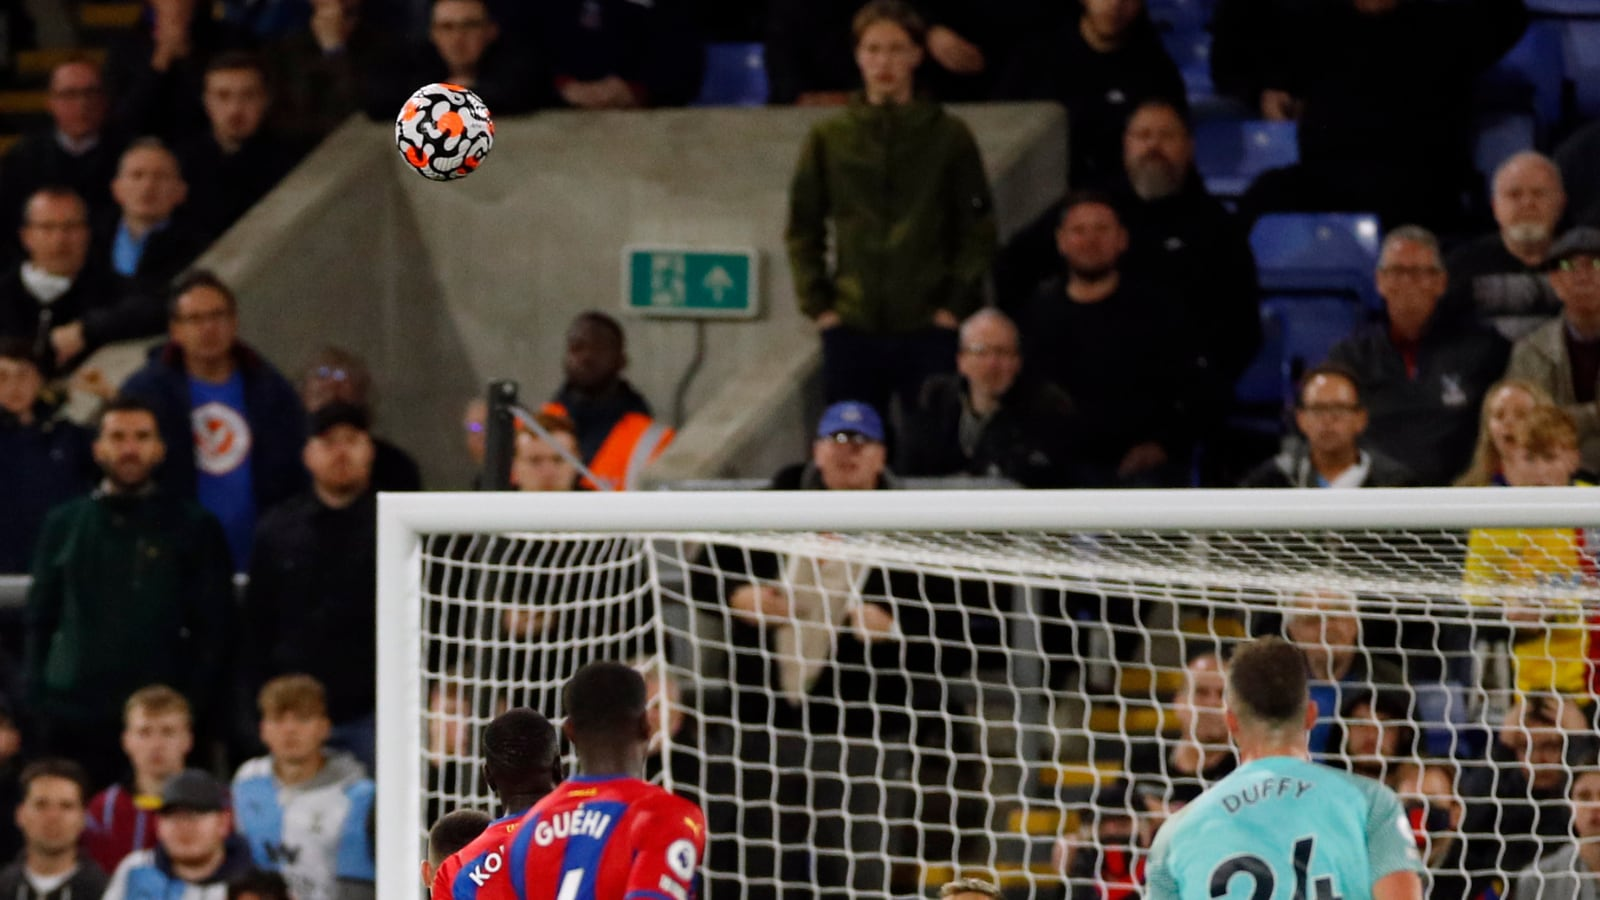 Premier League: Brighton & Hove Albion Earn Last-gasp Draw at Crystal Palace But Denied Top Spot